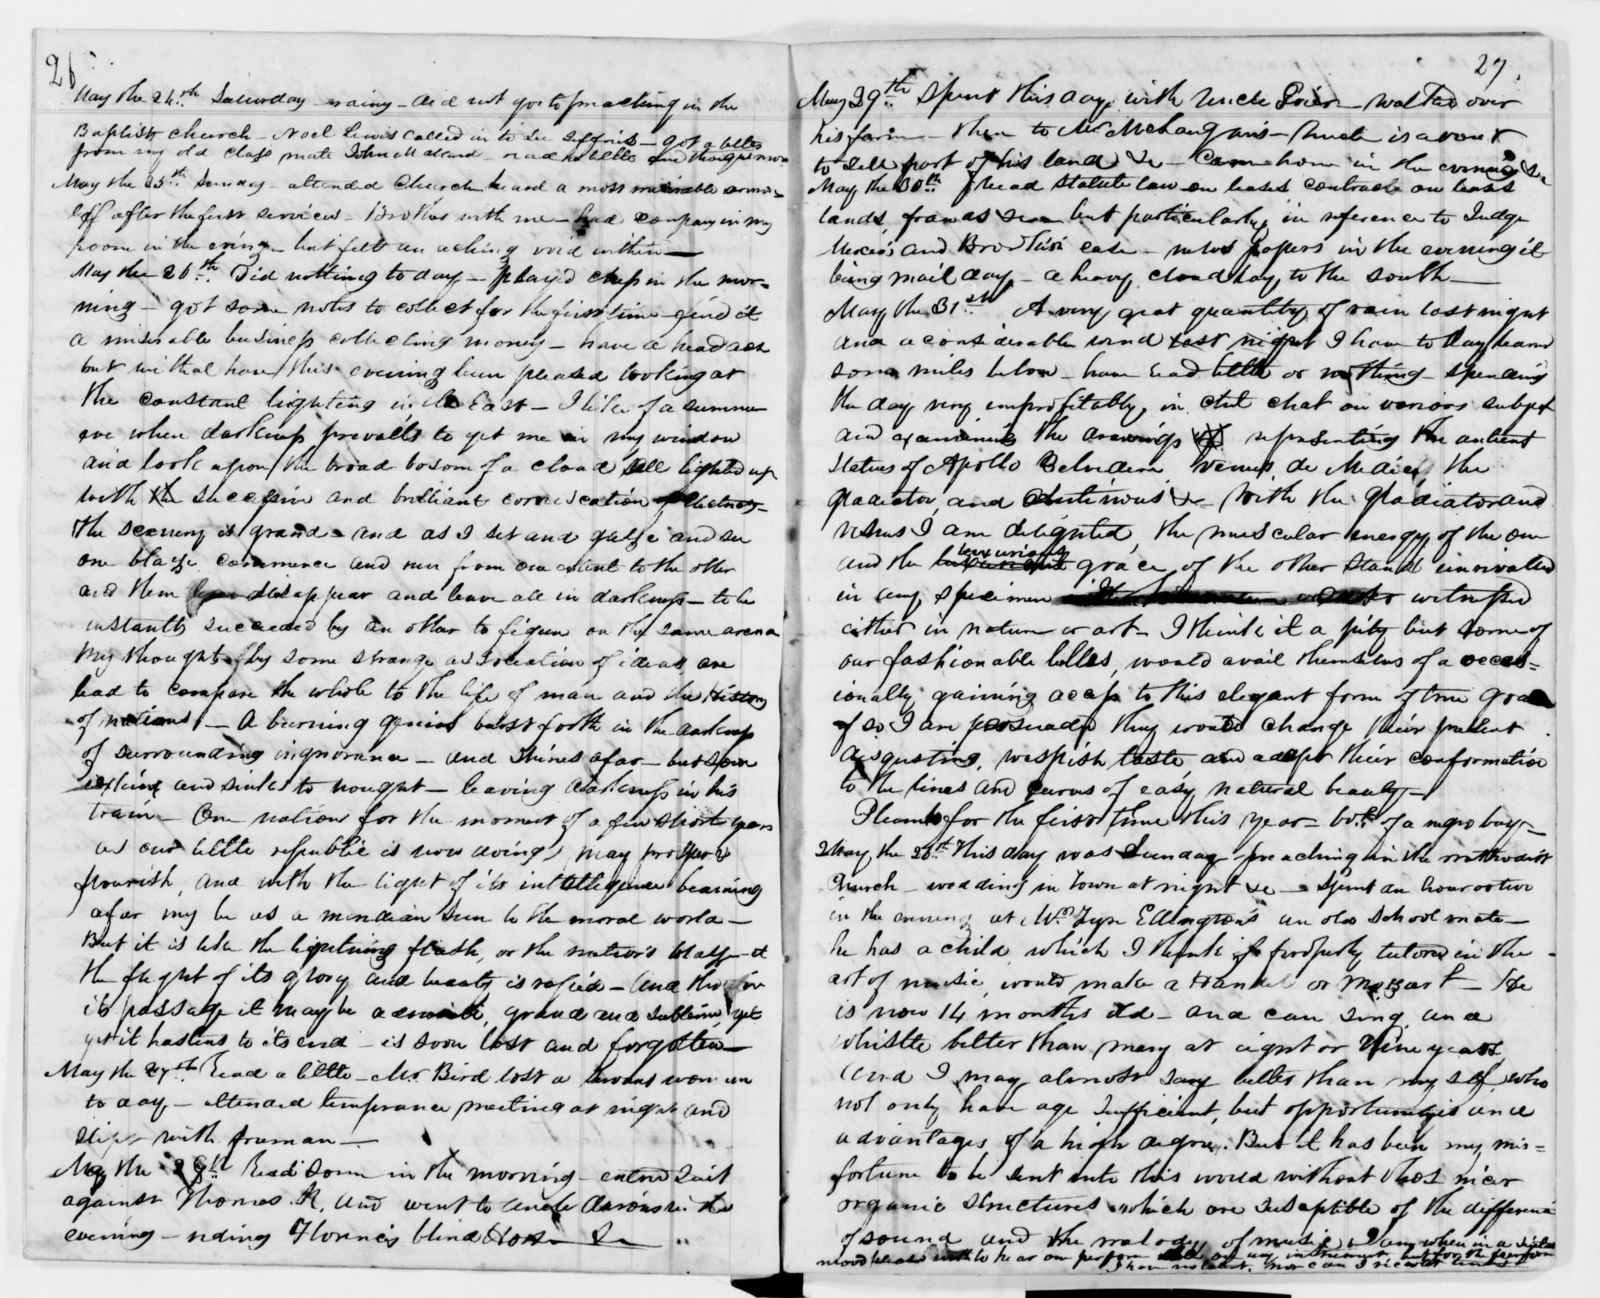 Alexander Hamilton Stephens Papers: Autobiography and Journal, 1834-1837; Bound vol., 1834, Apr. 14-1837, Jan. 26